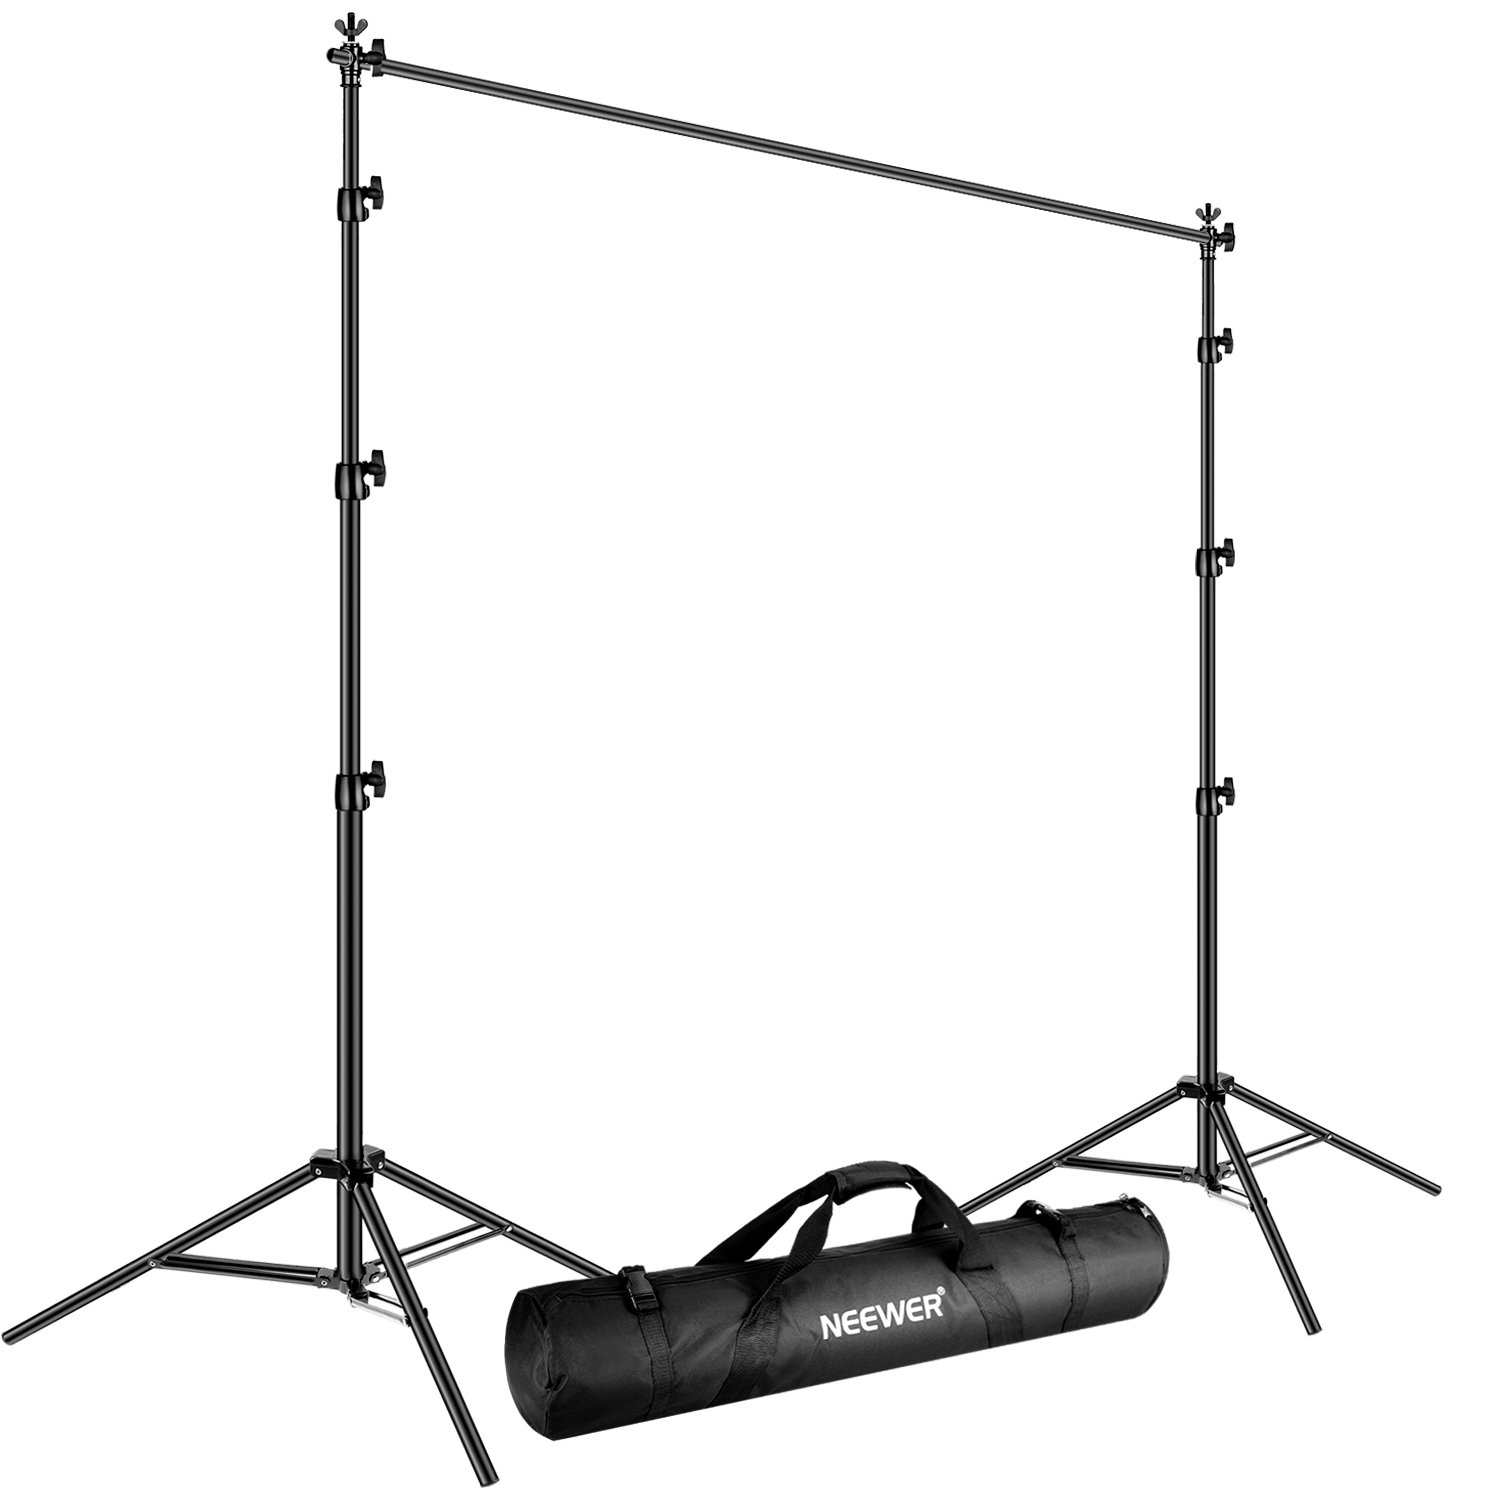 Neewer Adjustable Backdrop Support System Includes 4-8.5 feet/120-260 centimeters Background Stand and 9.8 feet/3 meters Cross Bar with Carrying Bag for Studio Video Photography (Aluminum Alloy) by Neewer